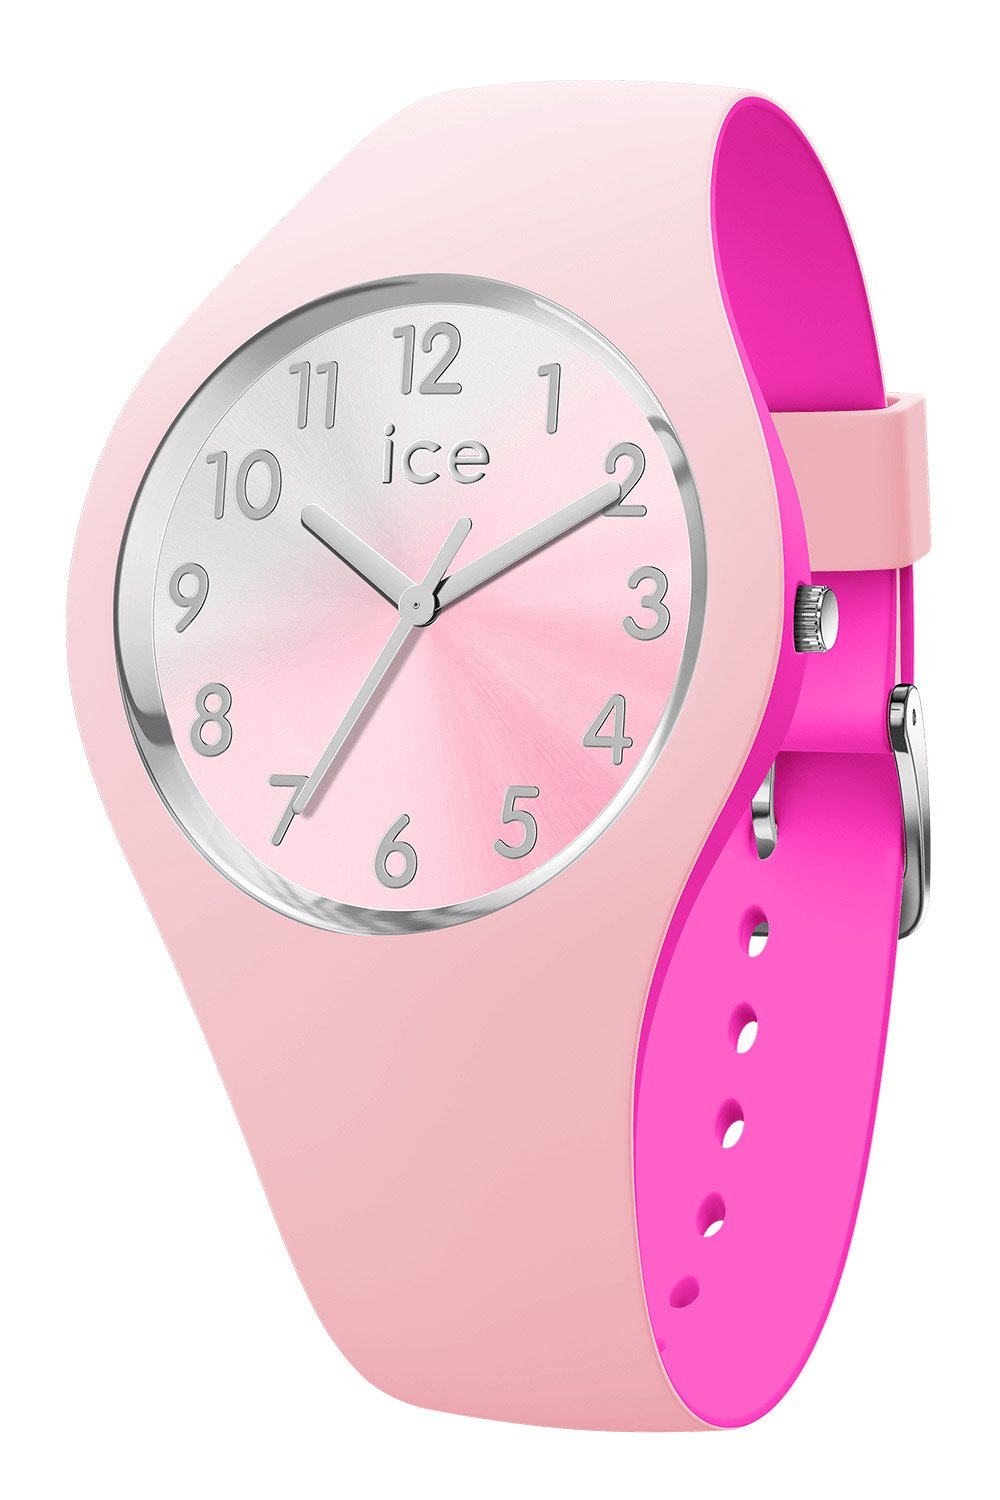 bei Uhrcenter: Ice-Watch 016979 Damenuhr Duo Chic Pink/Silber S - Damenuhr